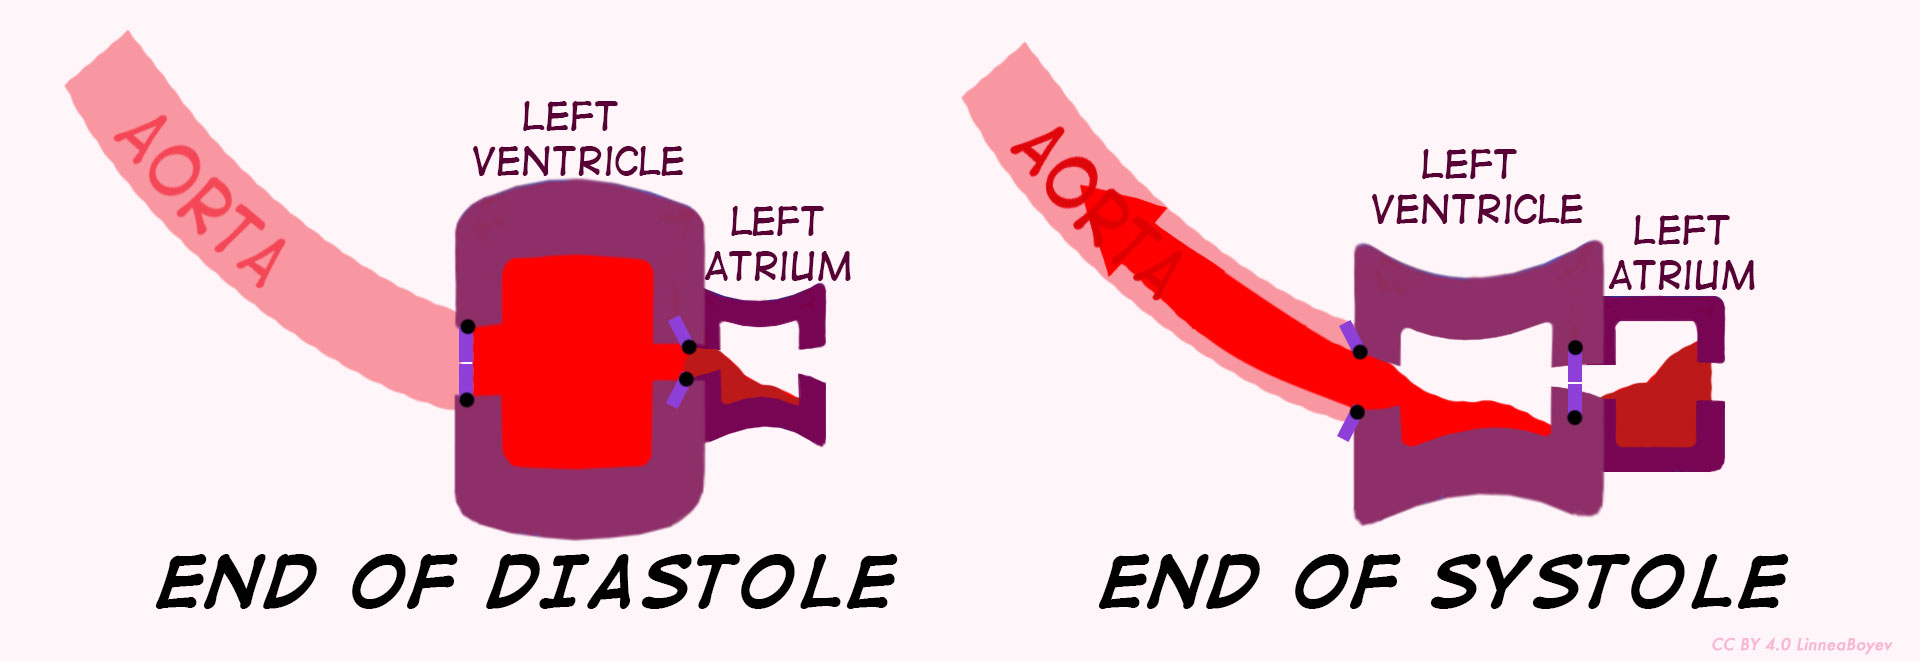 Where the blood is in the left ventricle at the end of systole and the end of diastole.